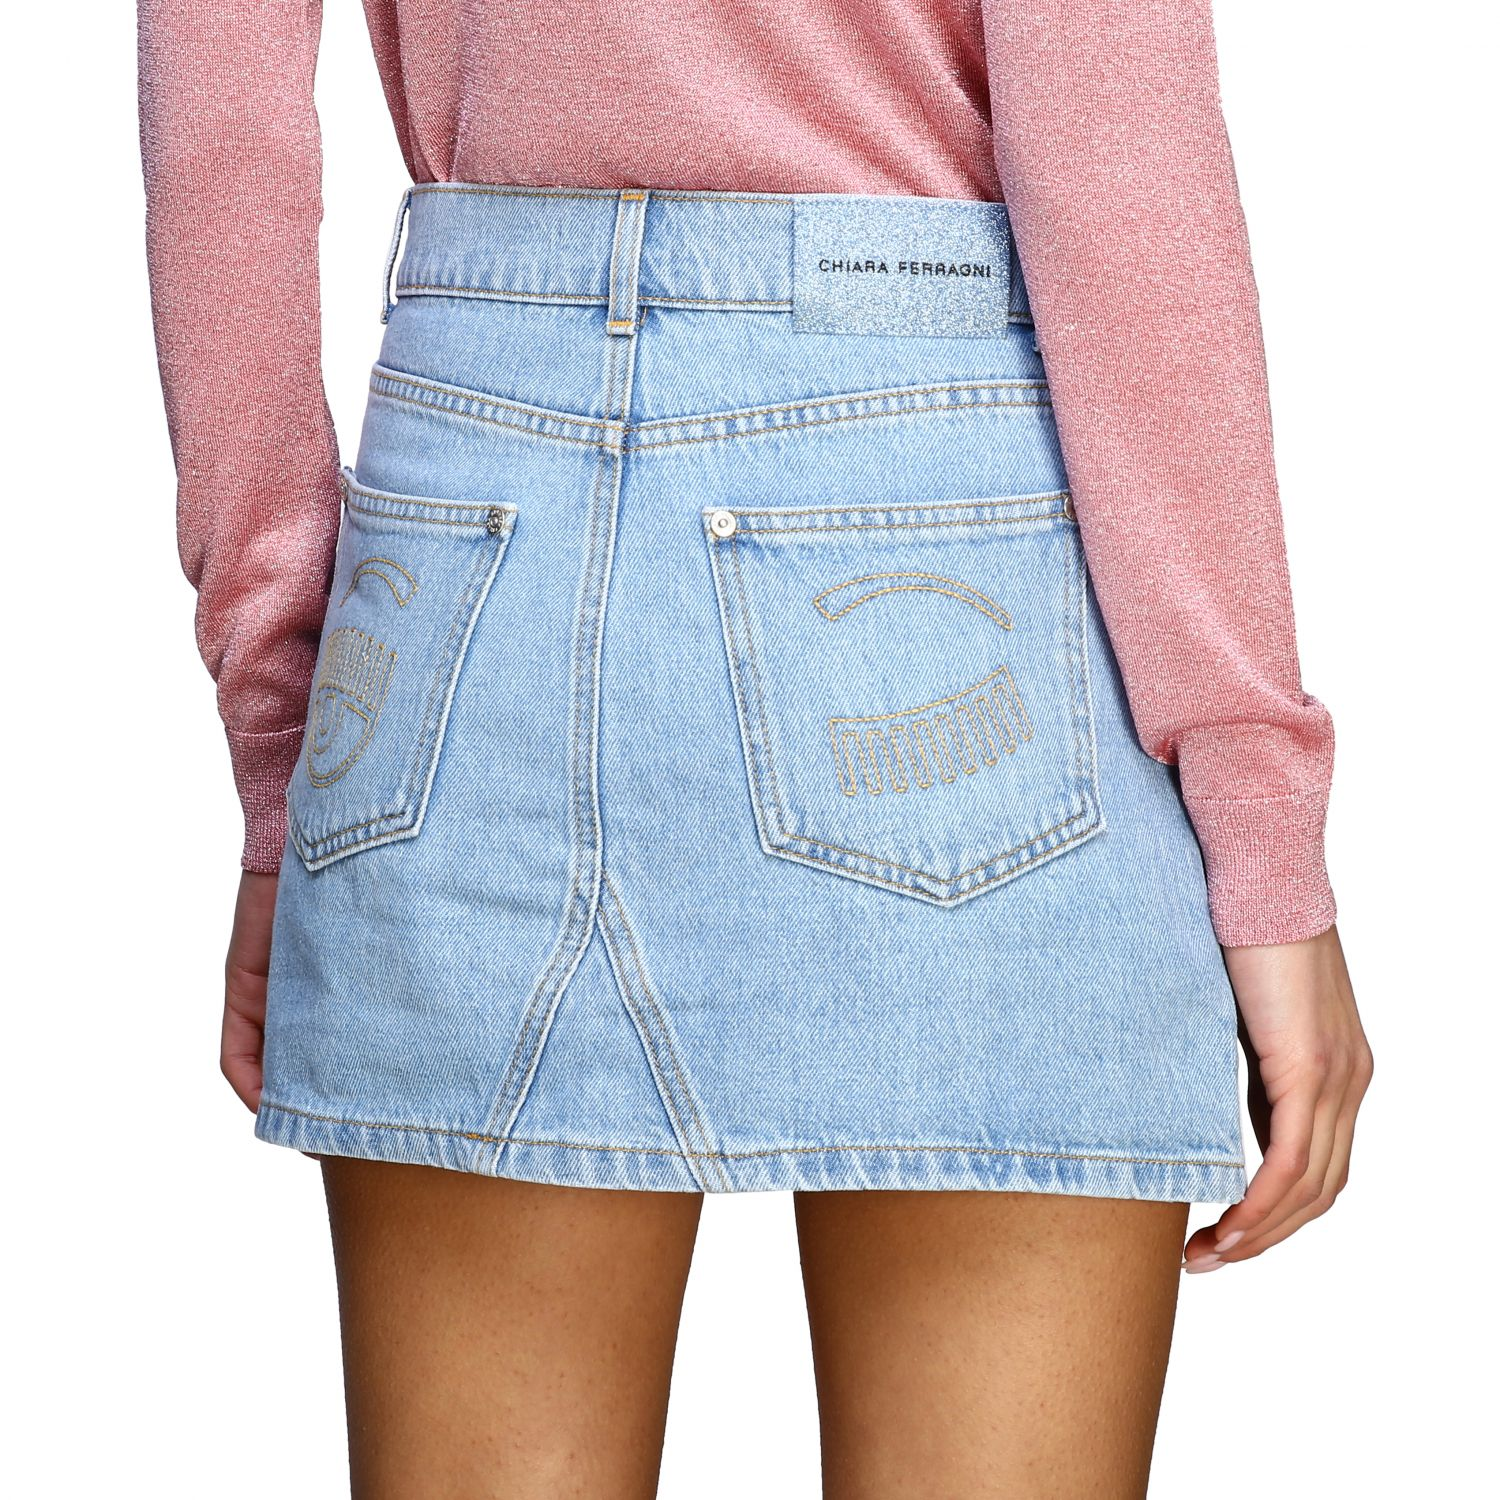 Skirt Chiara Ferragni: Skirt women Chiara Ferragni stone washed 5